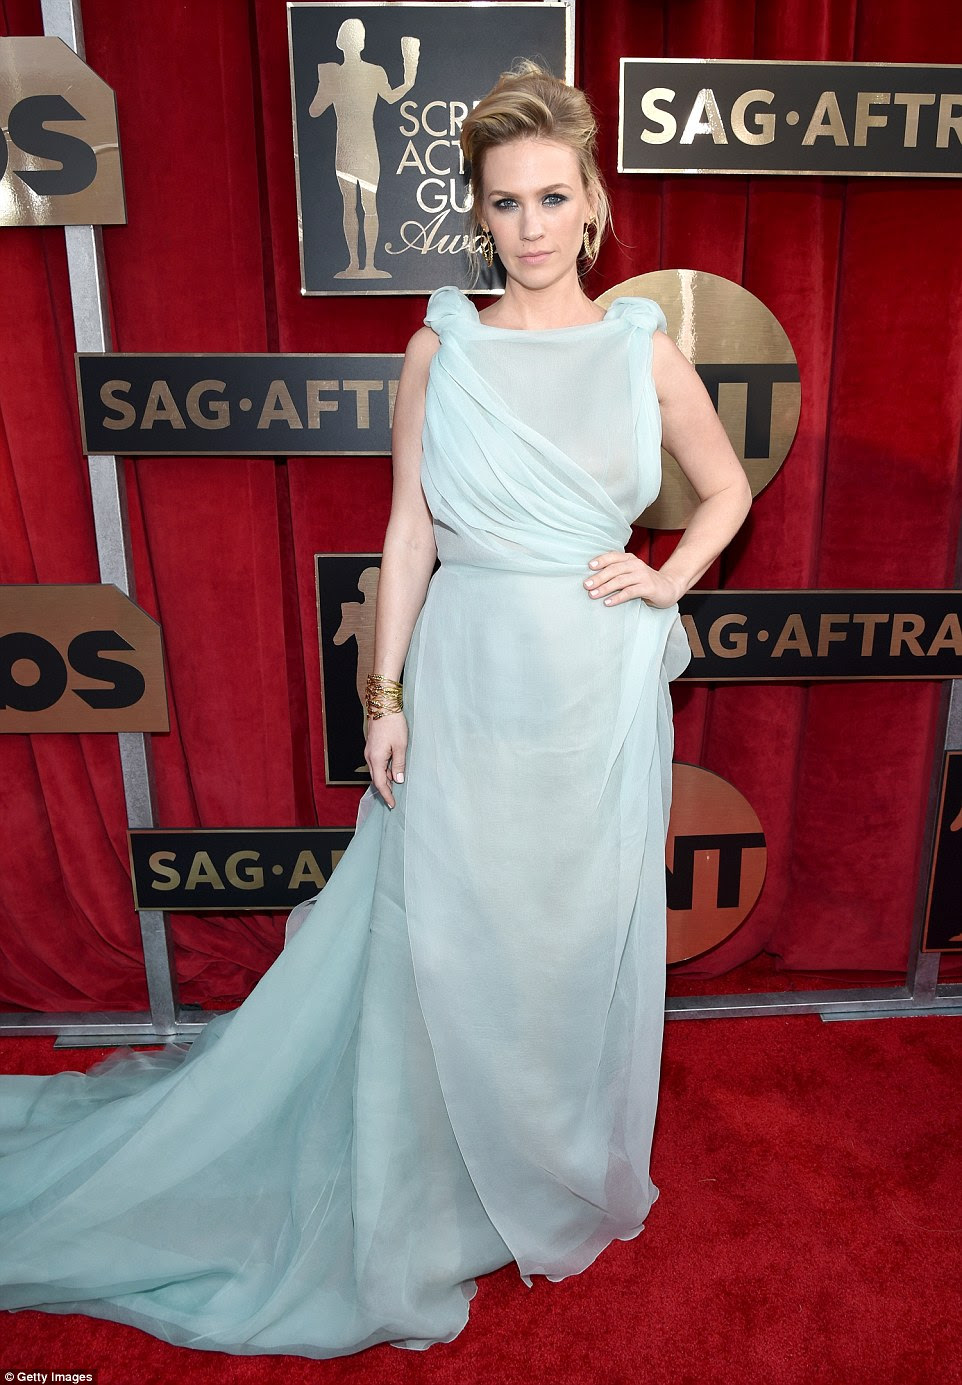 Unflattering:Another shock appearance on the list of worst-dressed stars is January Jones, who arrived at the award ceremony in this sea-foam green chiffon dress